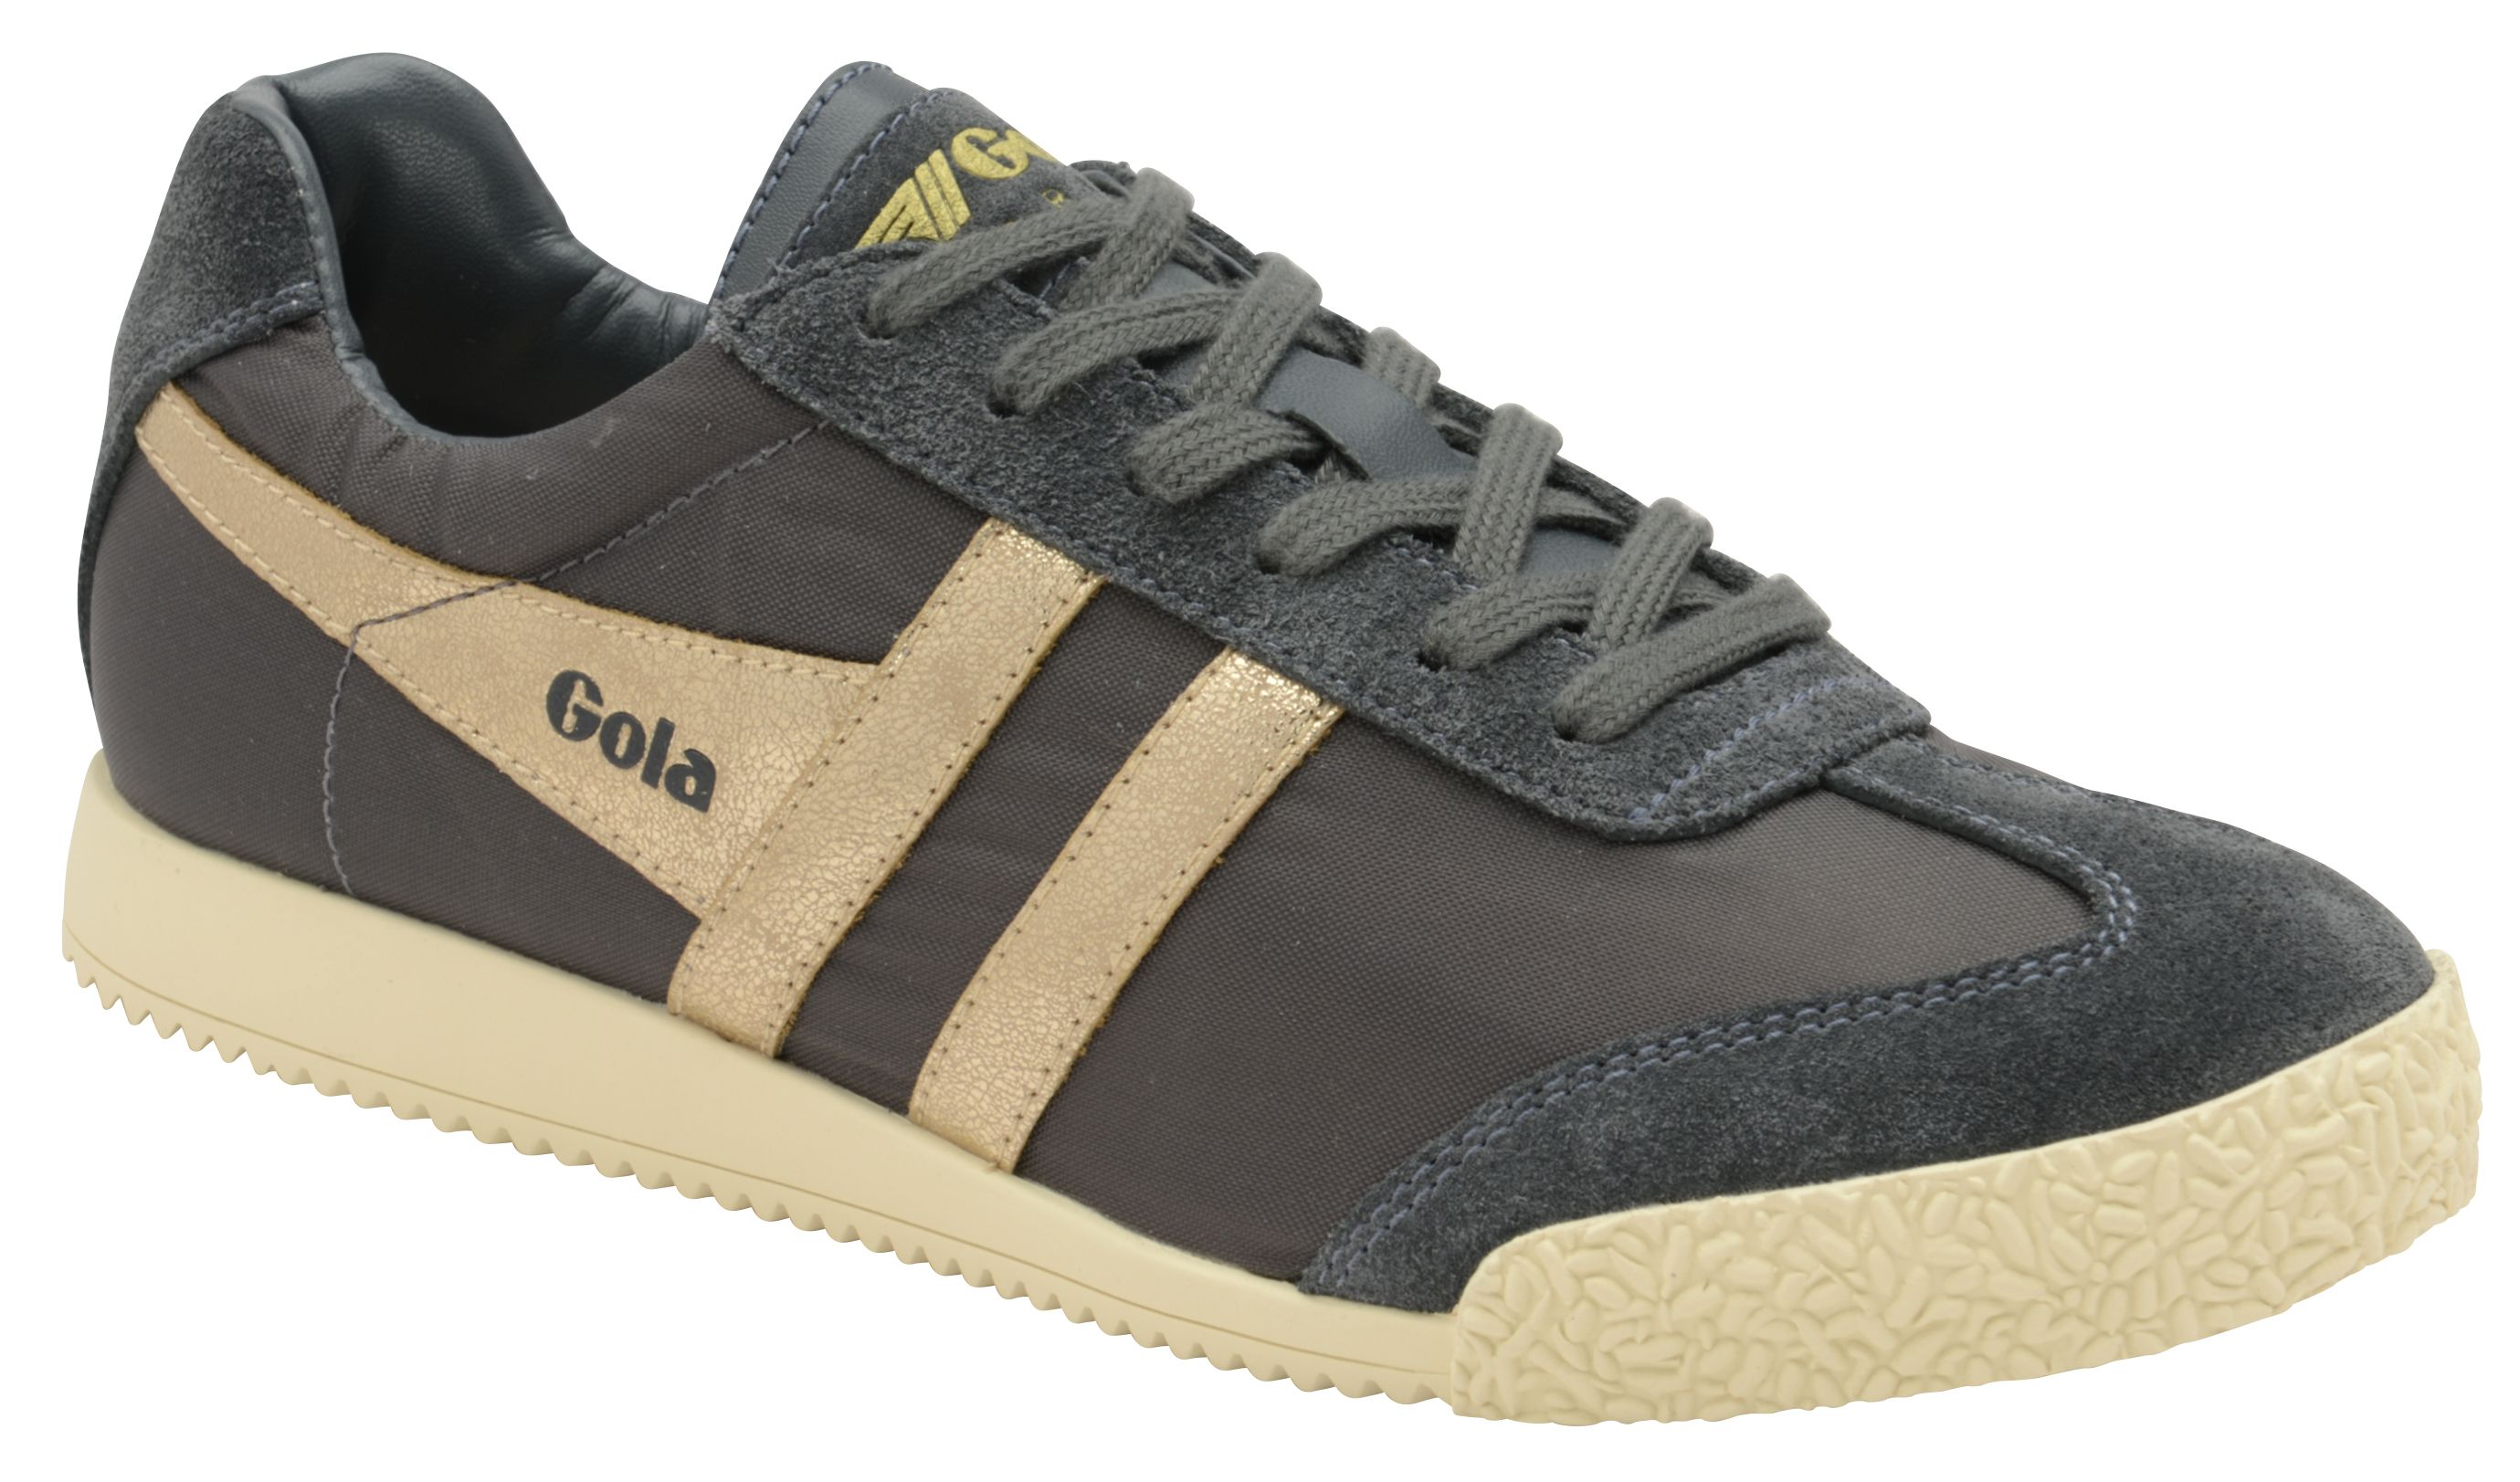 Gola Harrier Nylon Lace Up Trainers, Graphite